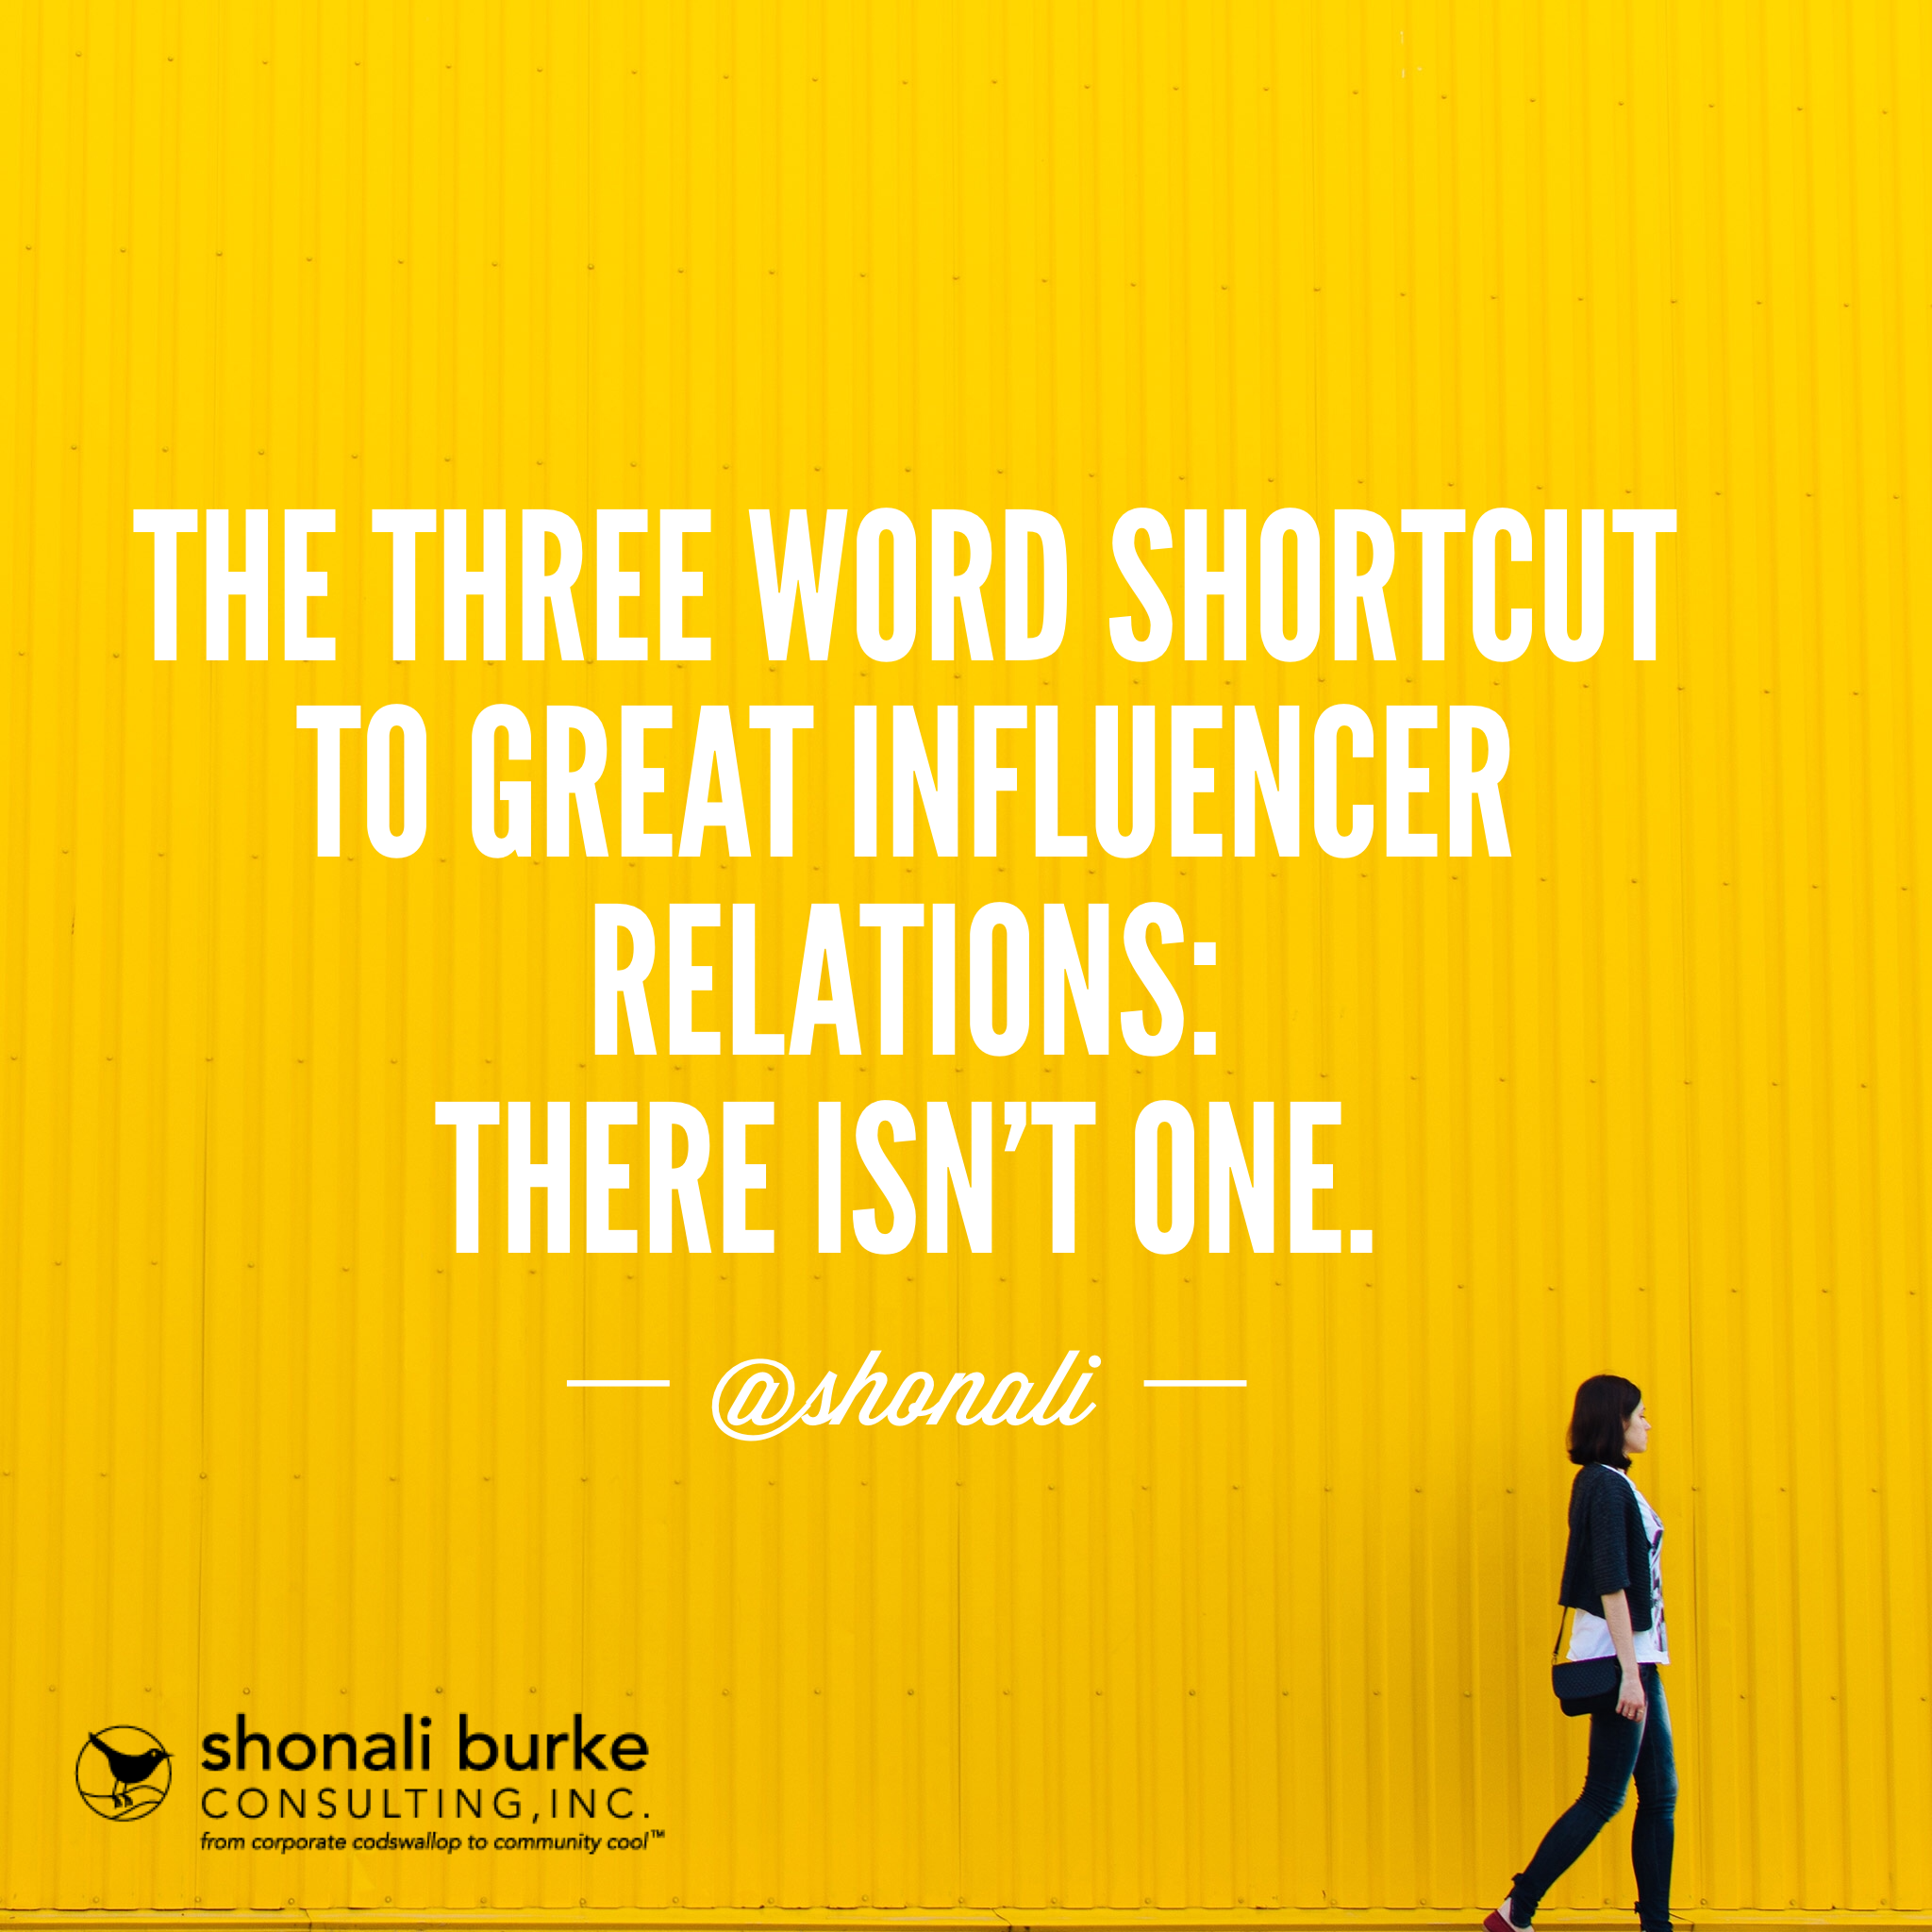 three word shortcut to influencer relations